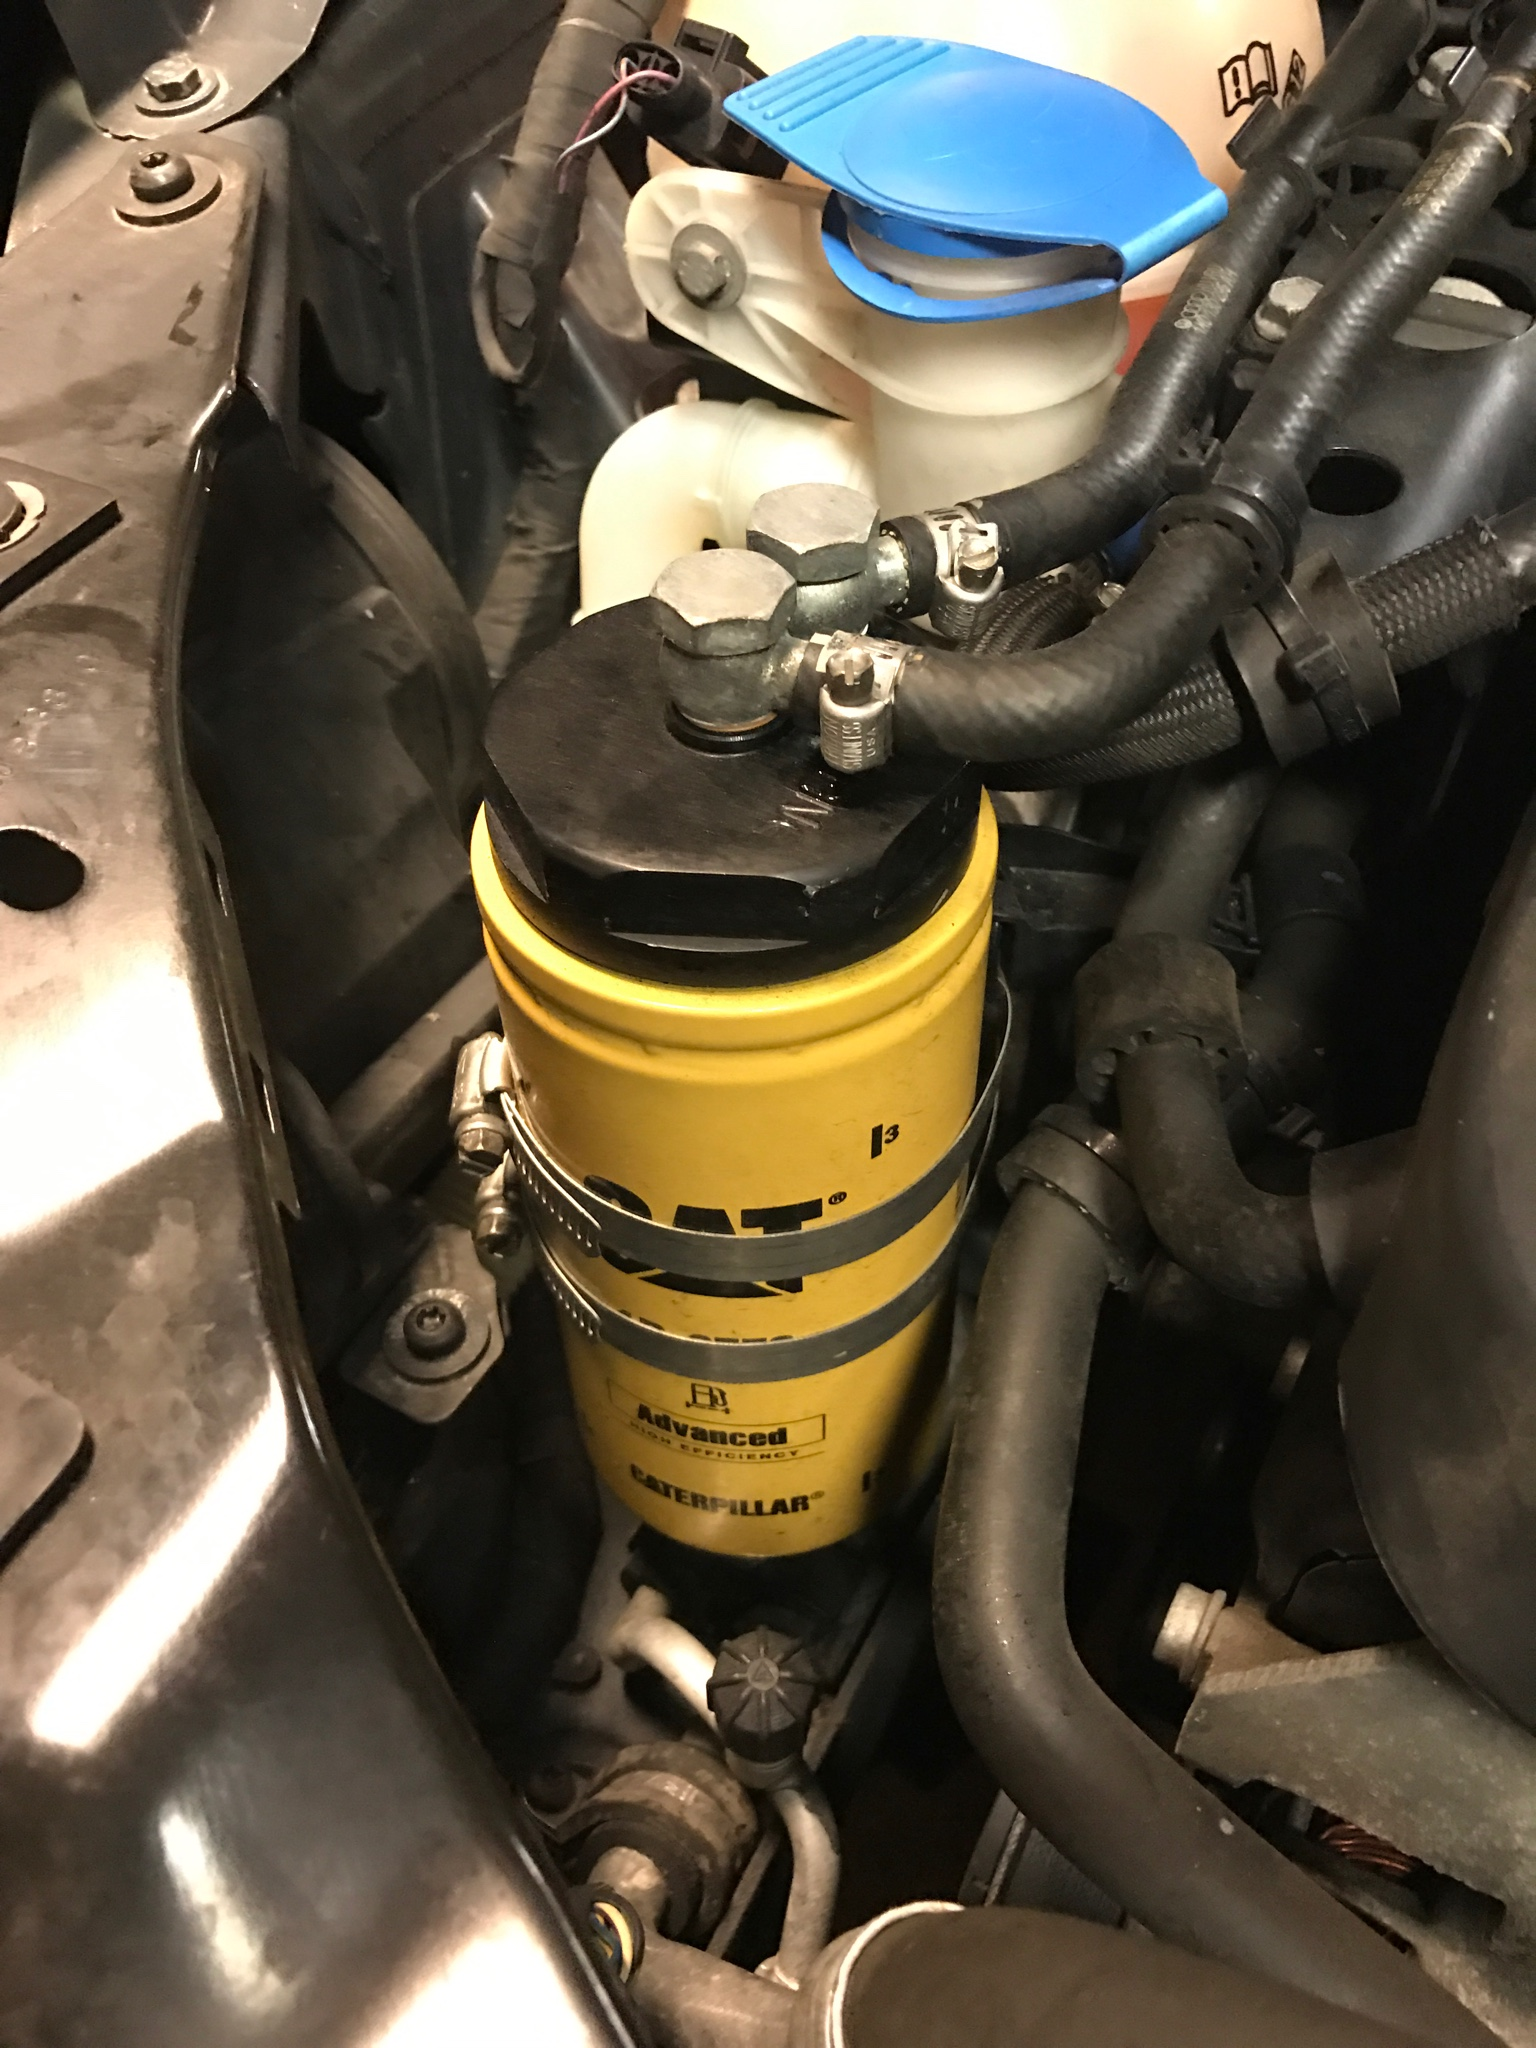 2004 Duramax Fuel Filter Housing Fs Nictane Cat Adaptor Tdiclub Forums Sent From My Iphone Using Tapatalk